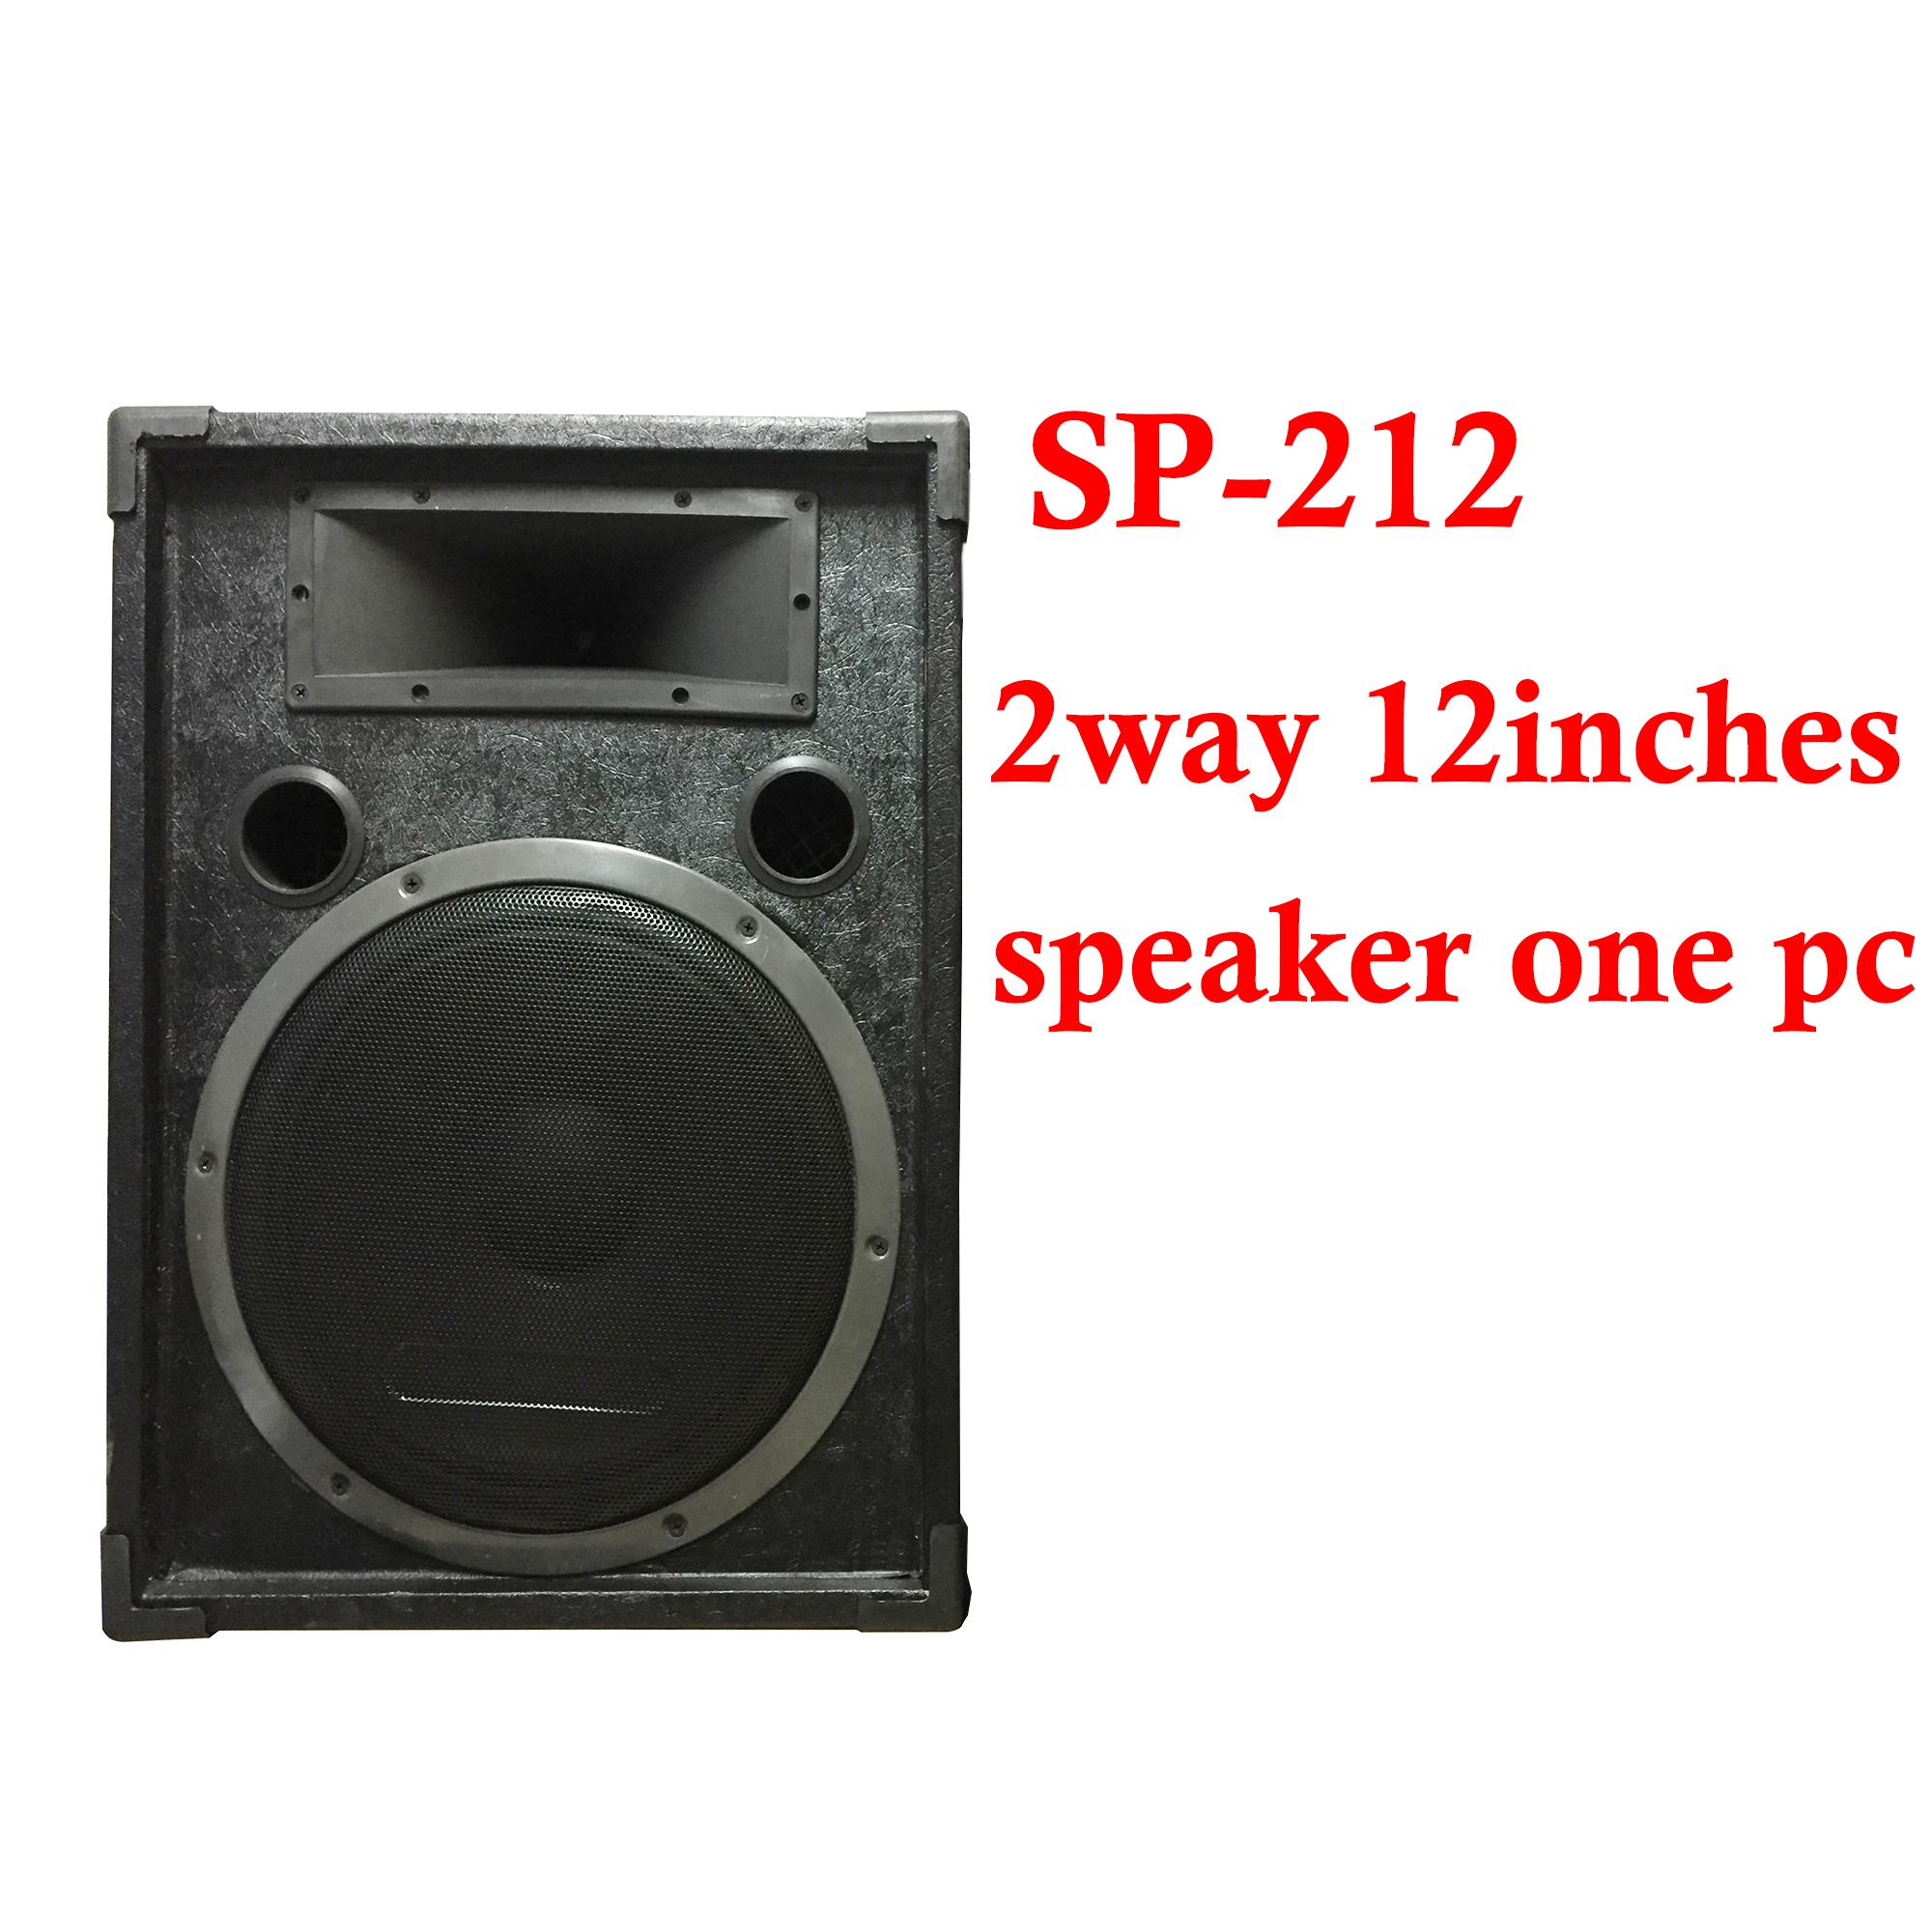 Subwoofer For Sale Speaker Prices Brands Specs In Cheap Car Filter Pcb Layout Jms Sp 212 12inches 2way Black